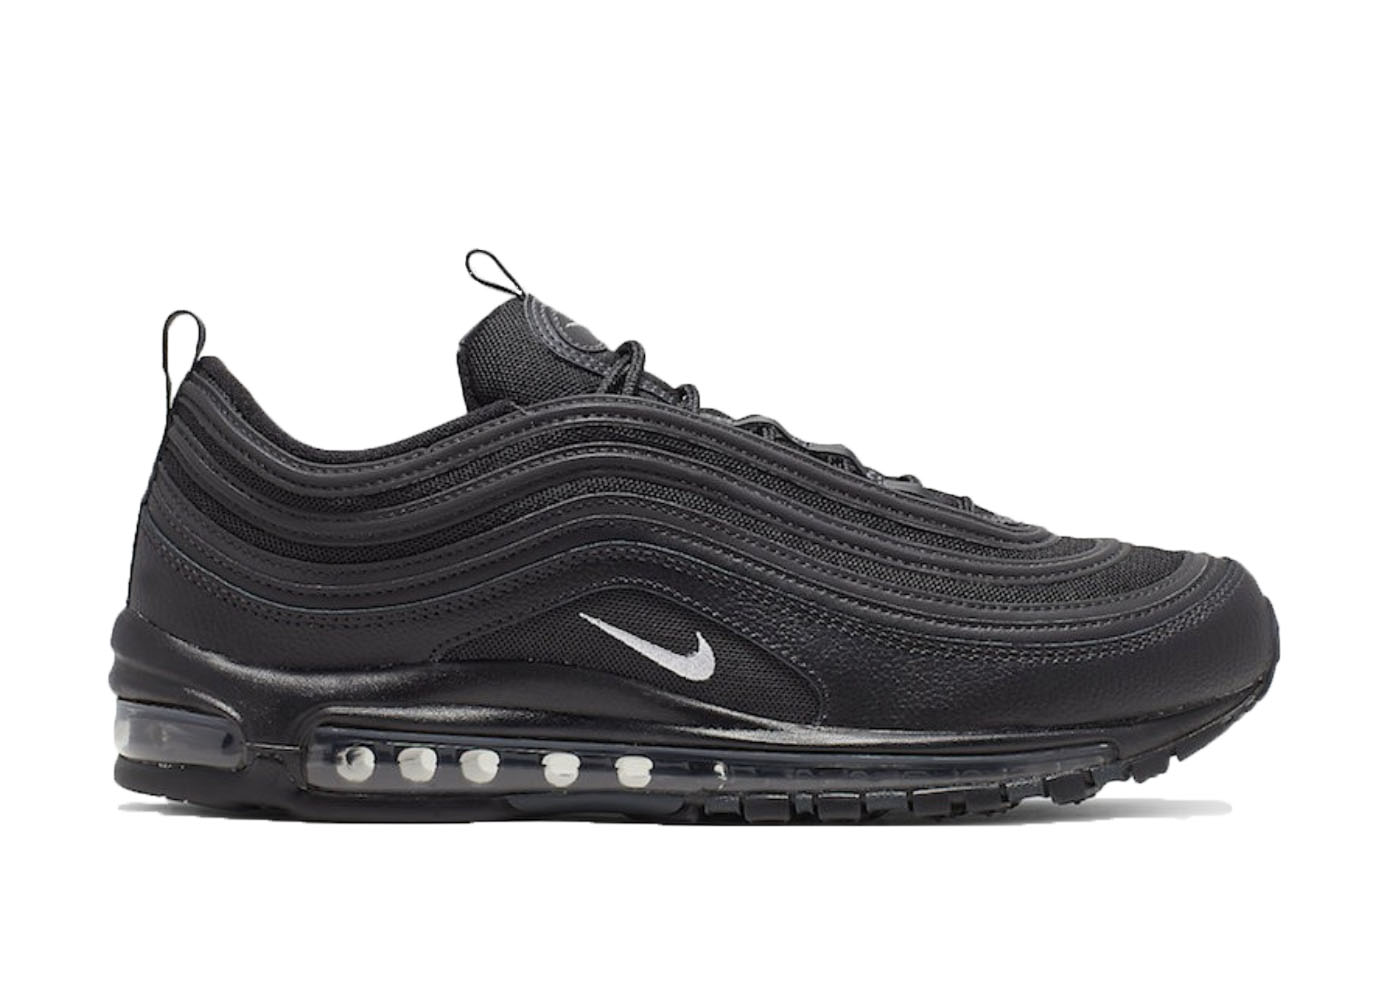 Nike Air Max 97 Black White Anthricite